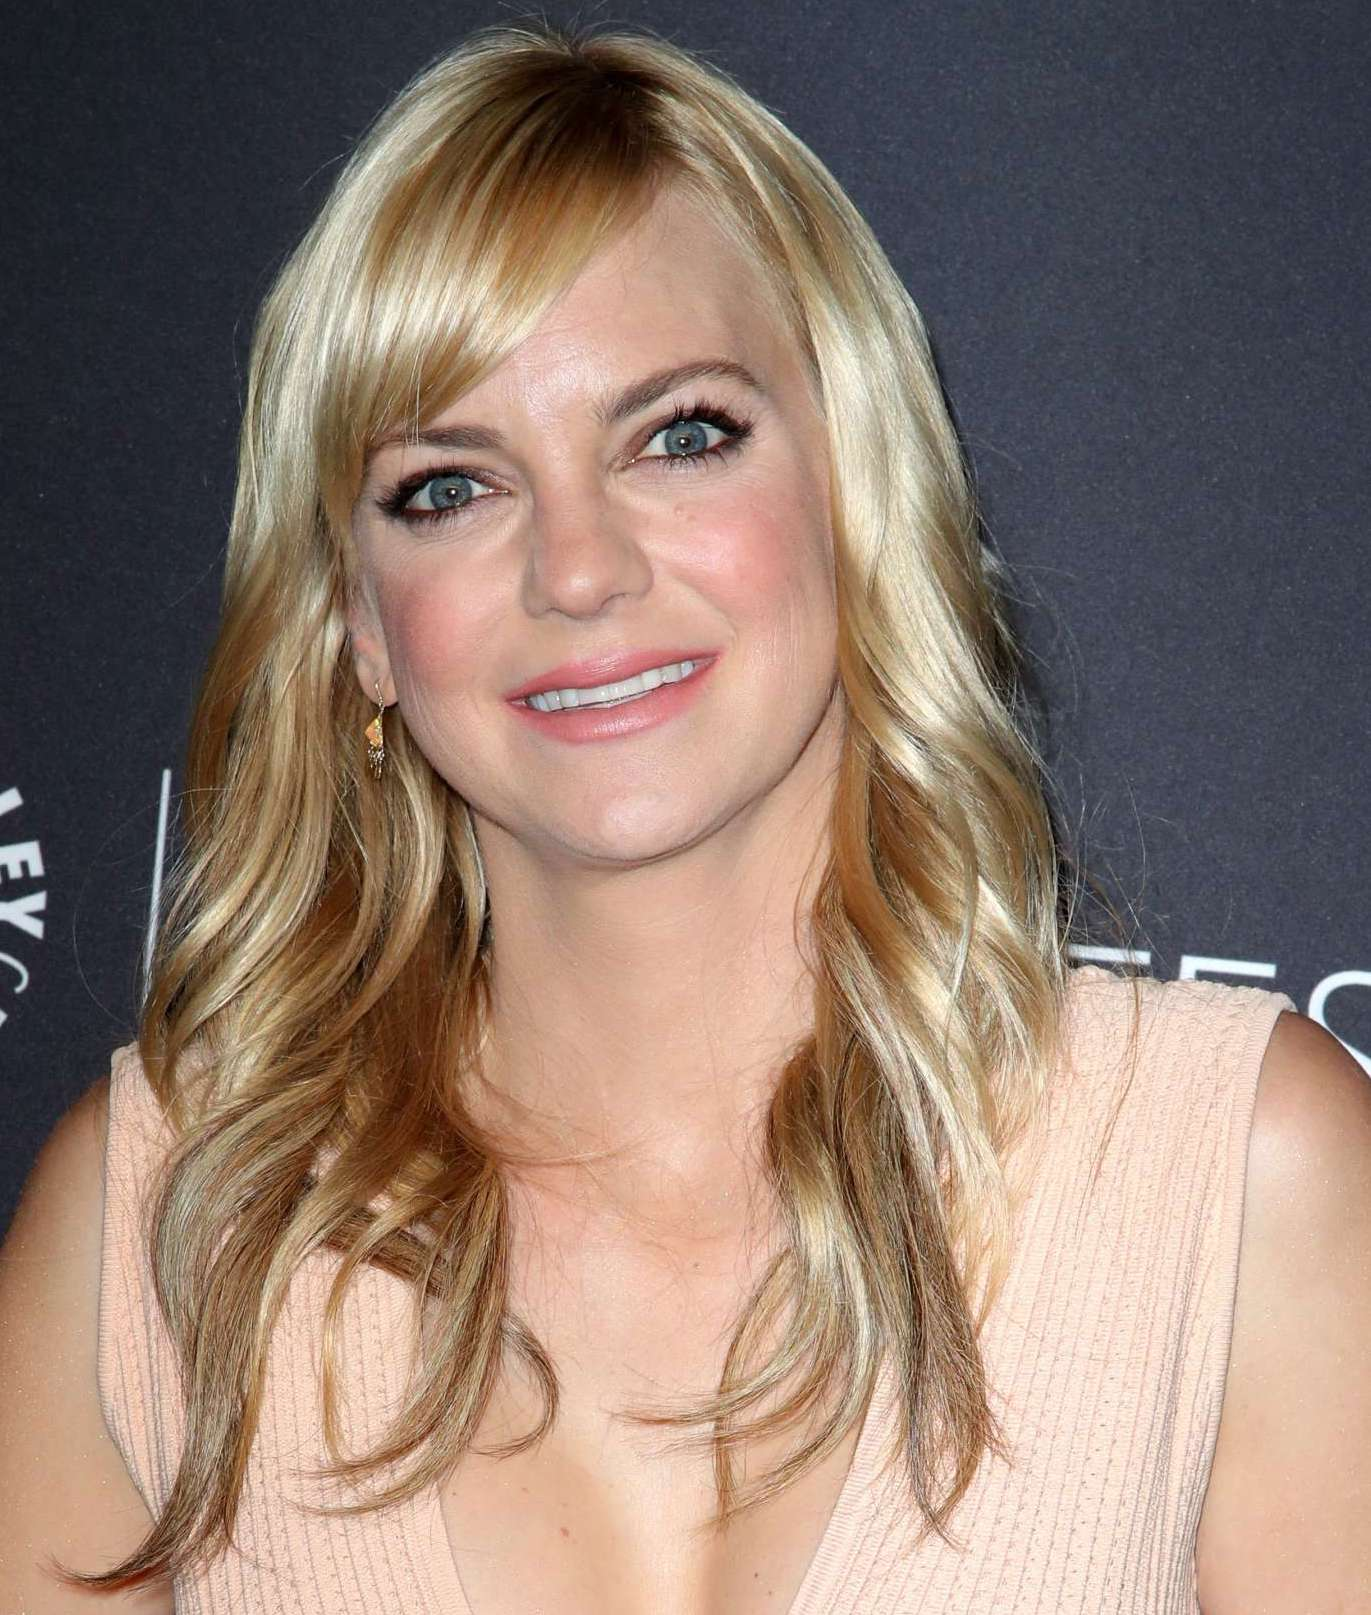 Anna Faris | Disney Wiki | FANDOM powered by Wikia